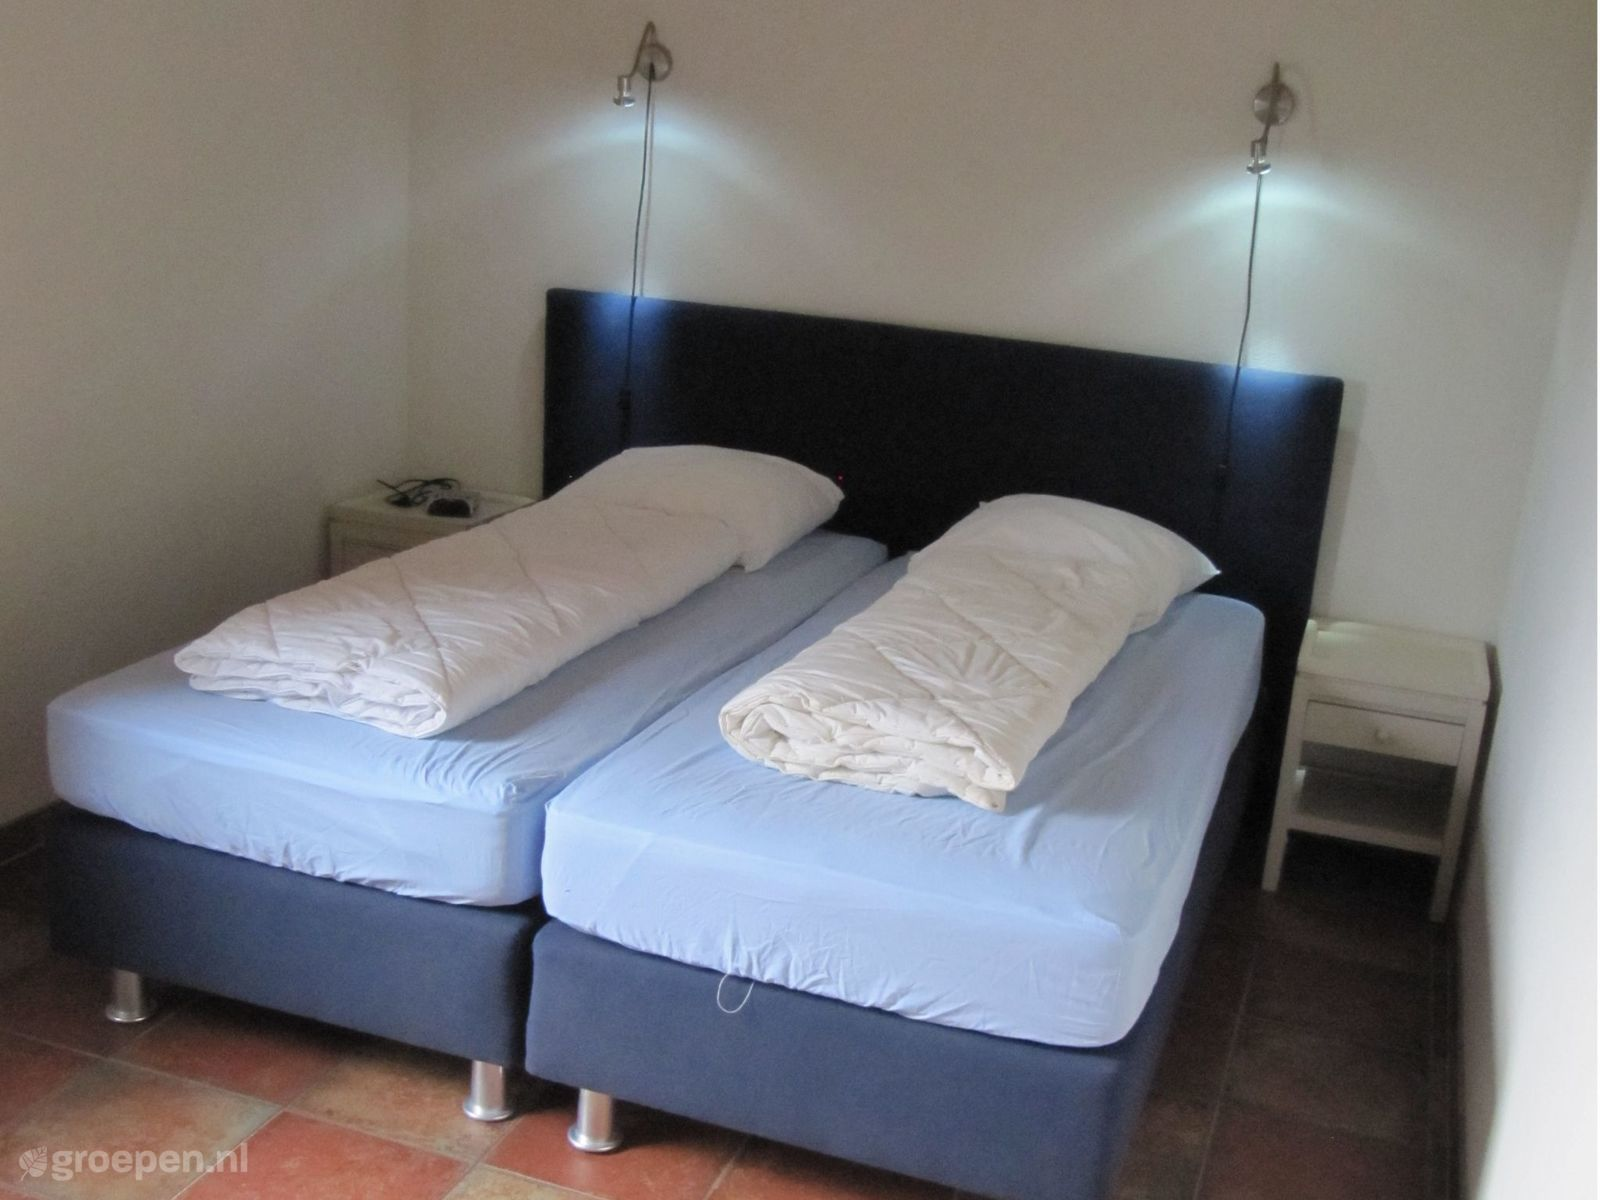 Group accommodation Didam